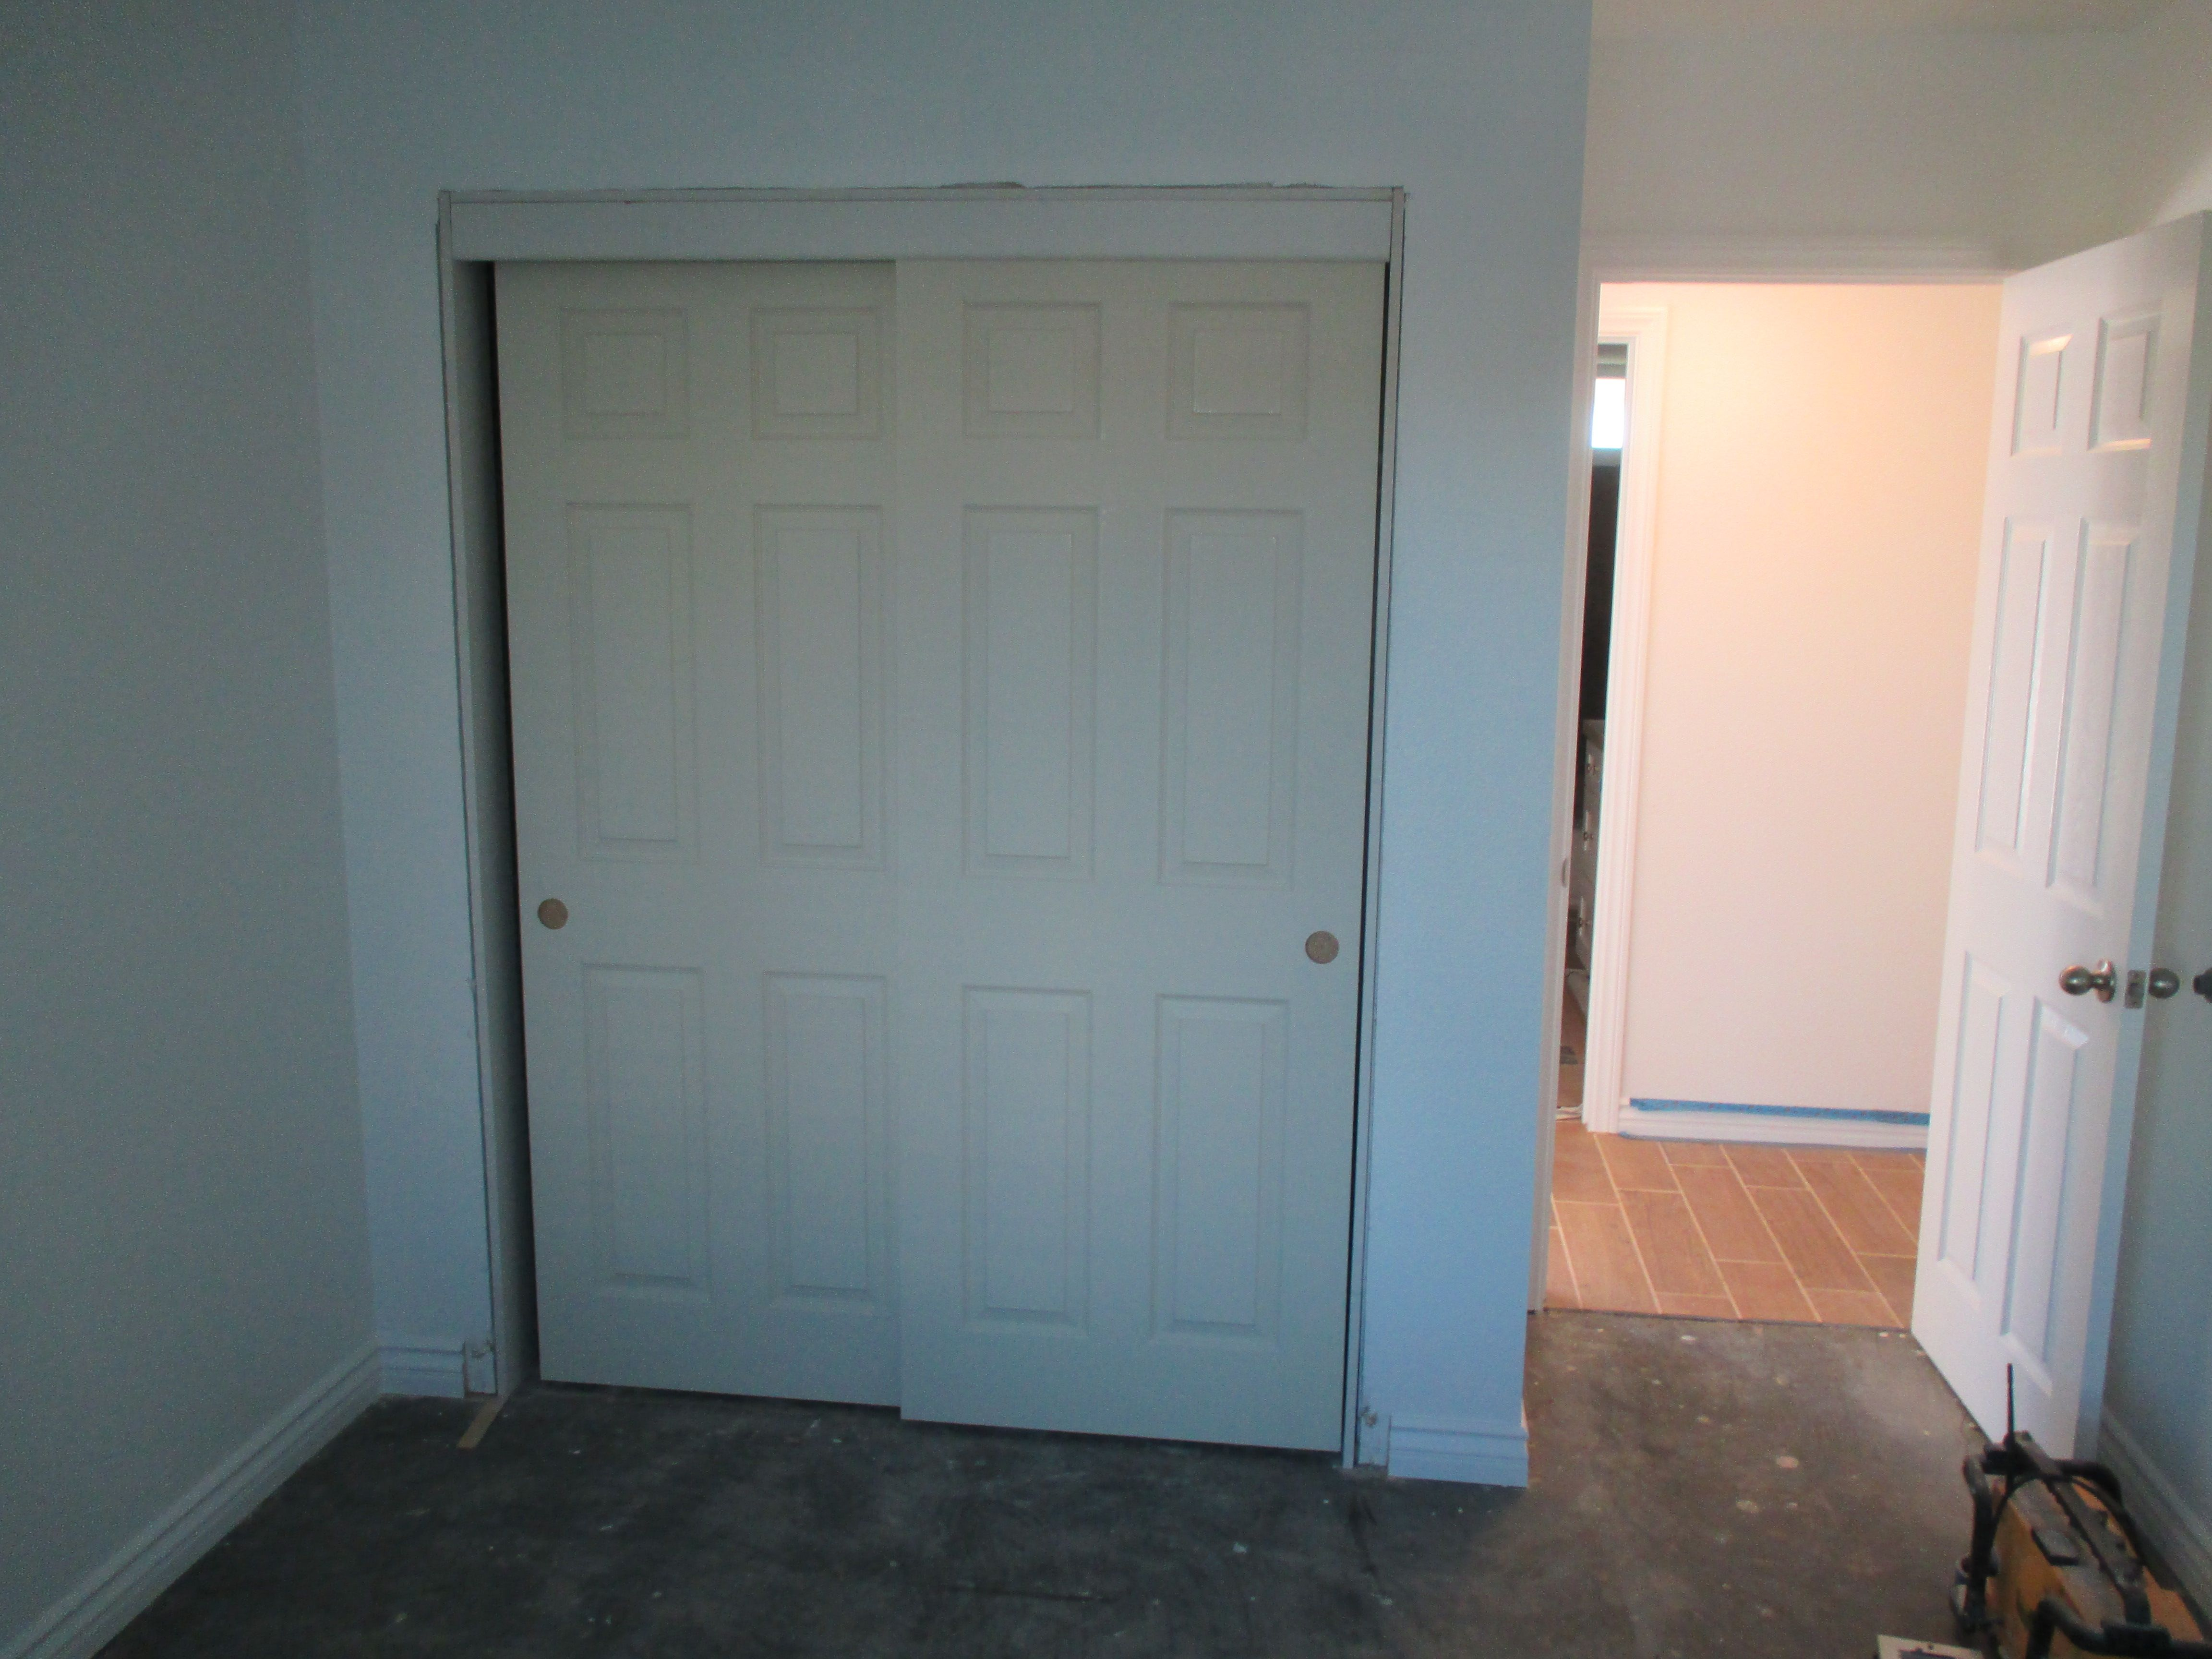 Bypass Or Sliding Hollow Core Or Solid Core Closet Doors A Recent